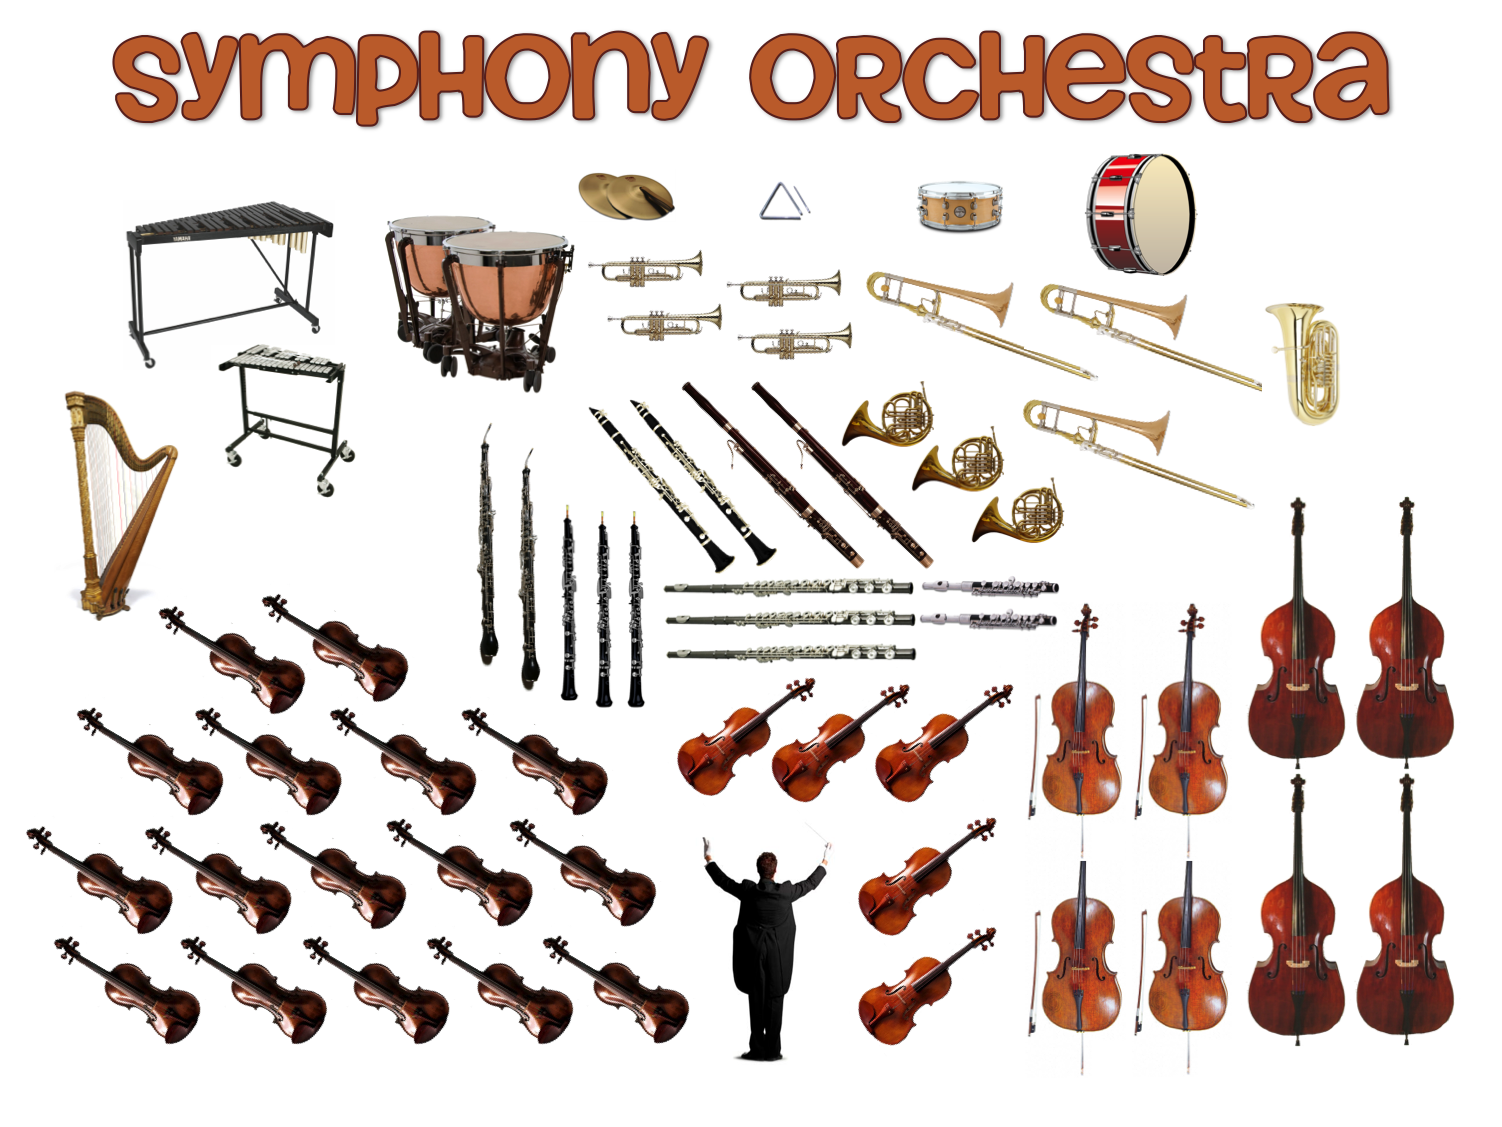 FREE DOWNLOAD - Orchestra Pictures - Beth's Music Notes - More ...